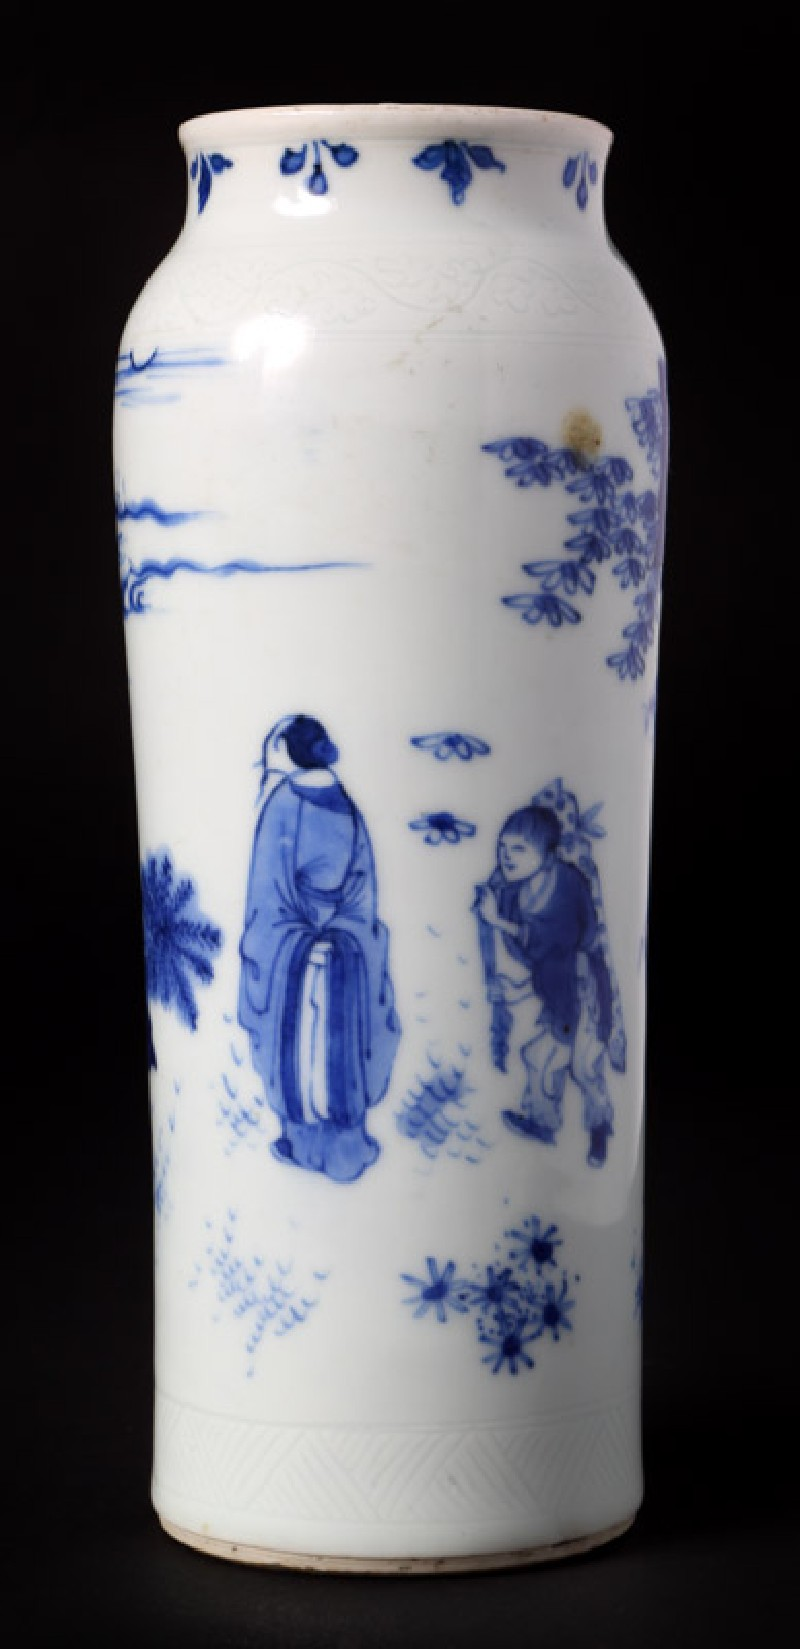 Blue-and-white vase with figures in a landscape